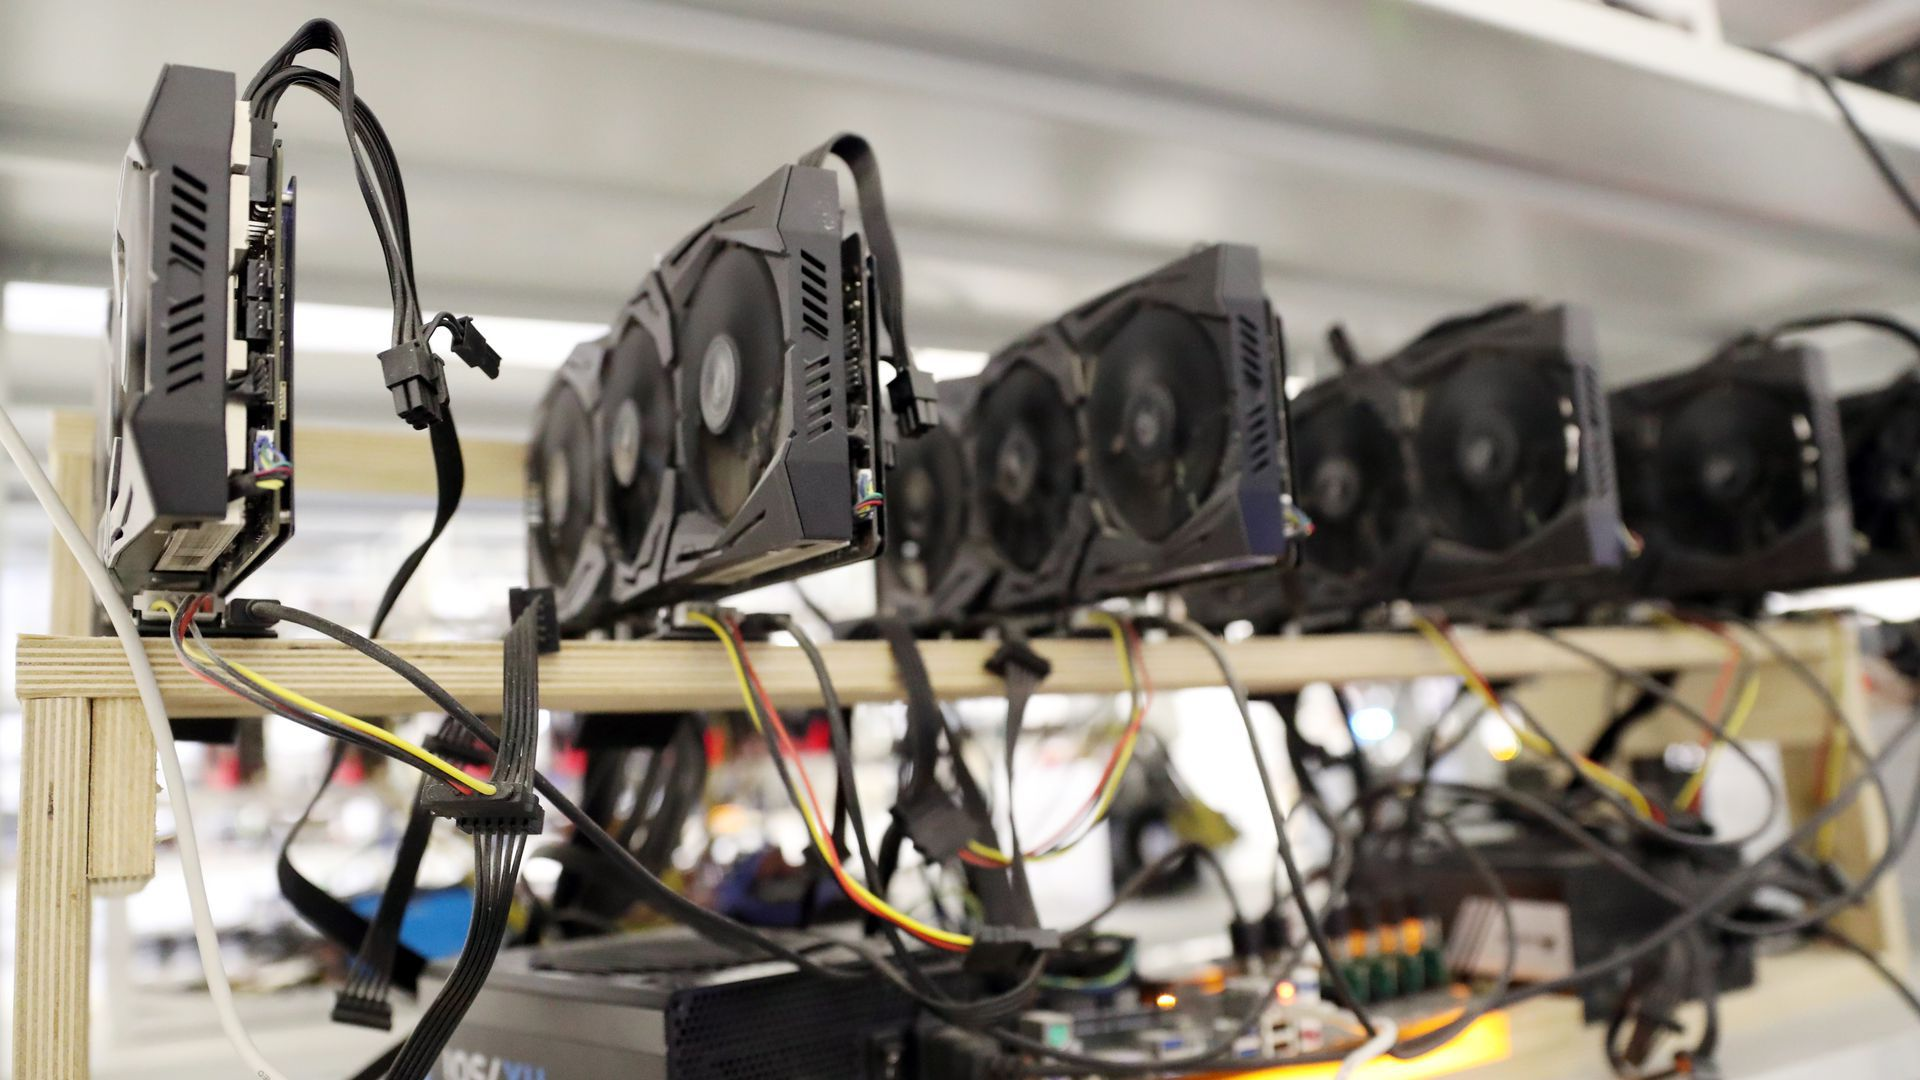 Hardware at the SberBit cryptocurrency mining equipment facility in Moscow.